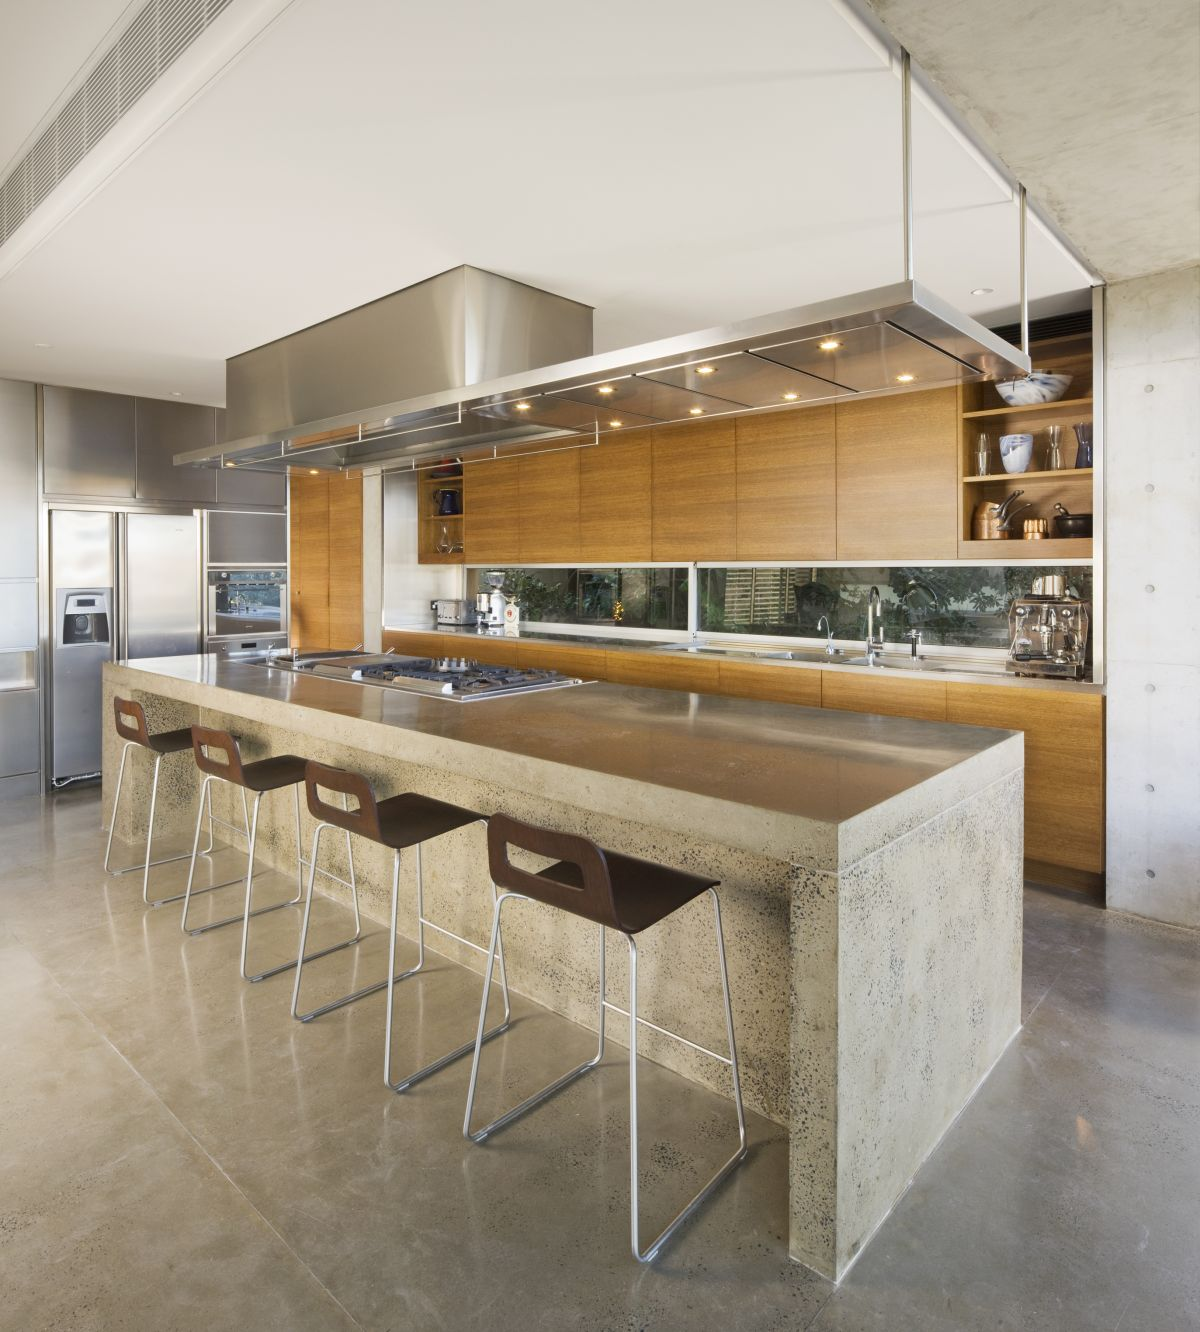 Modern Kitchen Design: Simply Inspiring 10 Wonderful Kitchen Design Lines That